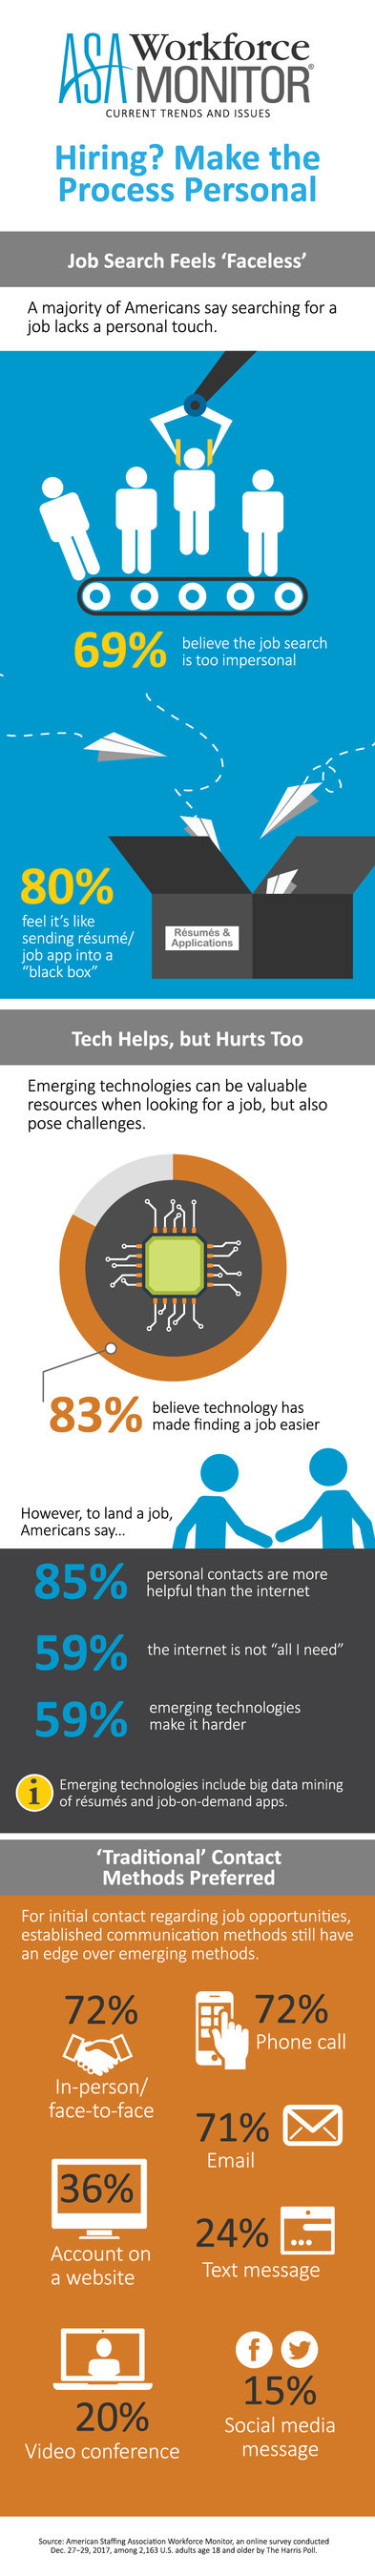 """About seven in 10 Americans (69%) believe that the job search today is too impersonal, according to the results of the latest American Staffing Association Workforce Monitor survey of more than 2,100 U.S. adults conducted online by The Harris Poll. And eight in 10 (80%) say that applying for a job feels like sending their résumé or job application into a """"black box."""""""